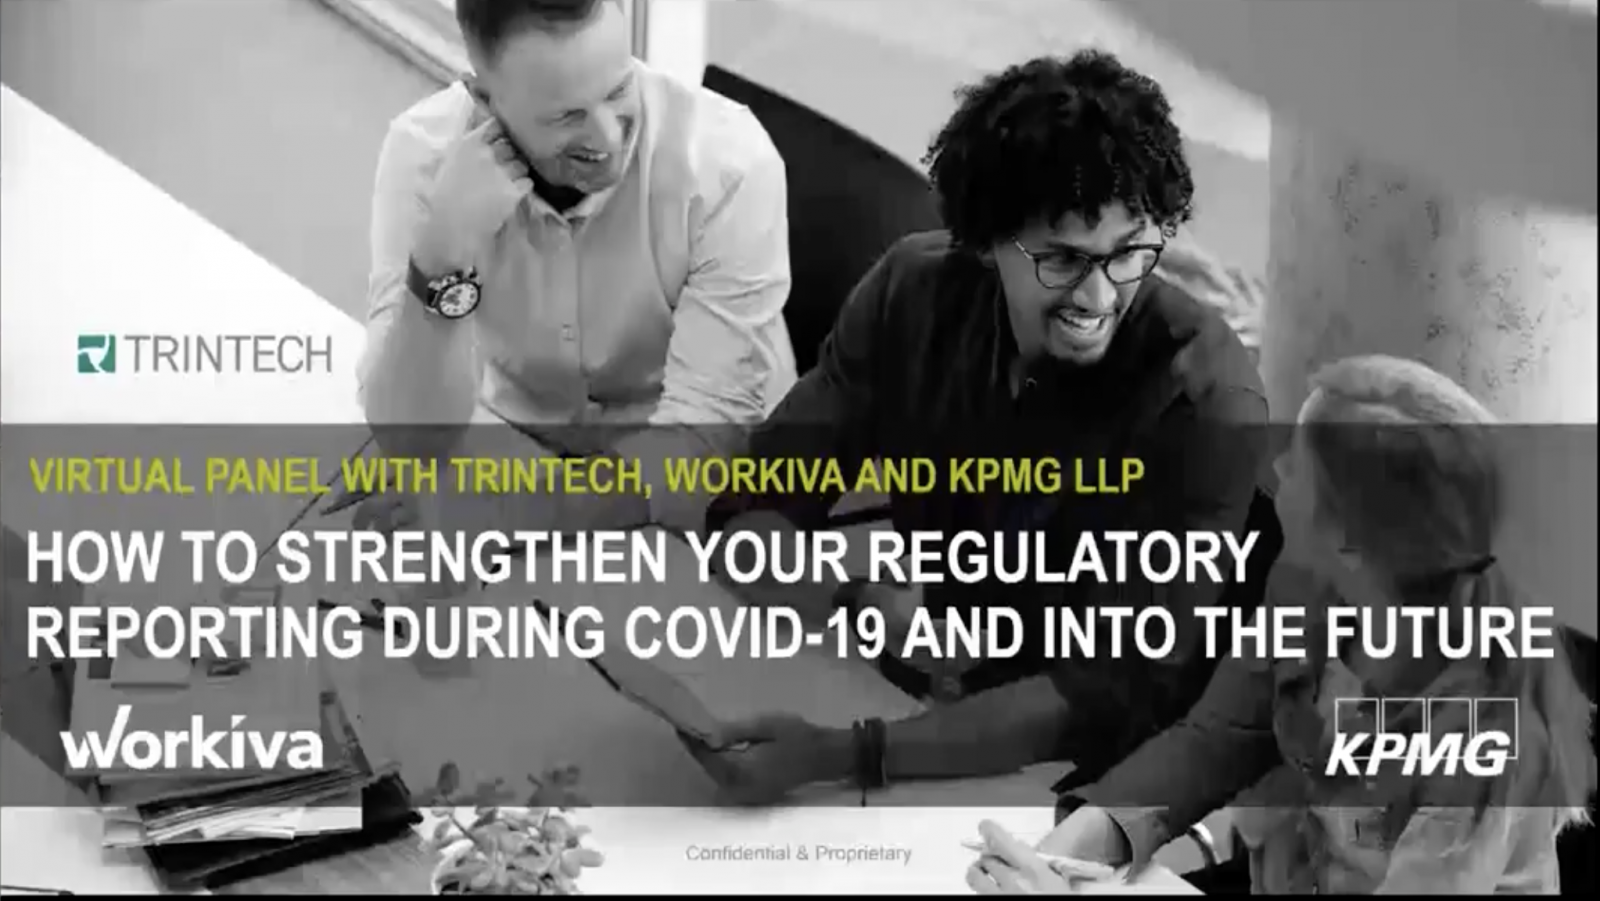 how to strengthen your regulatory reporting during covid-19 webinar title slide